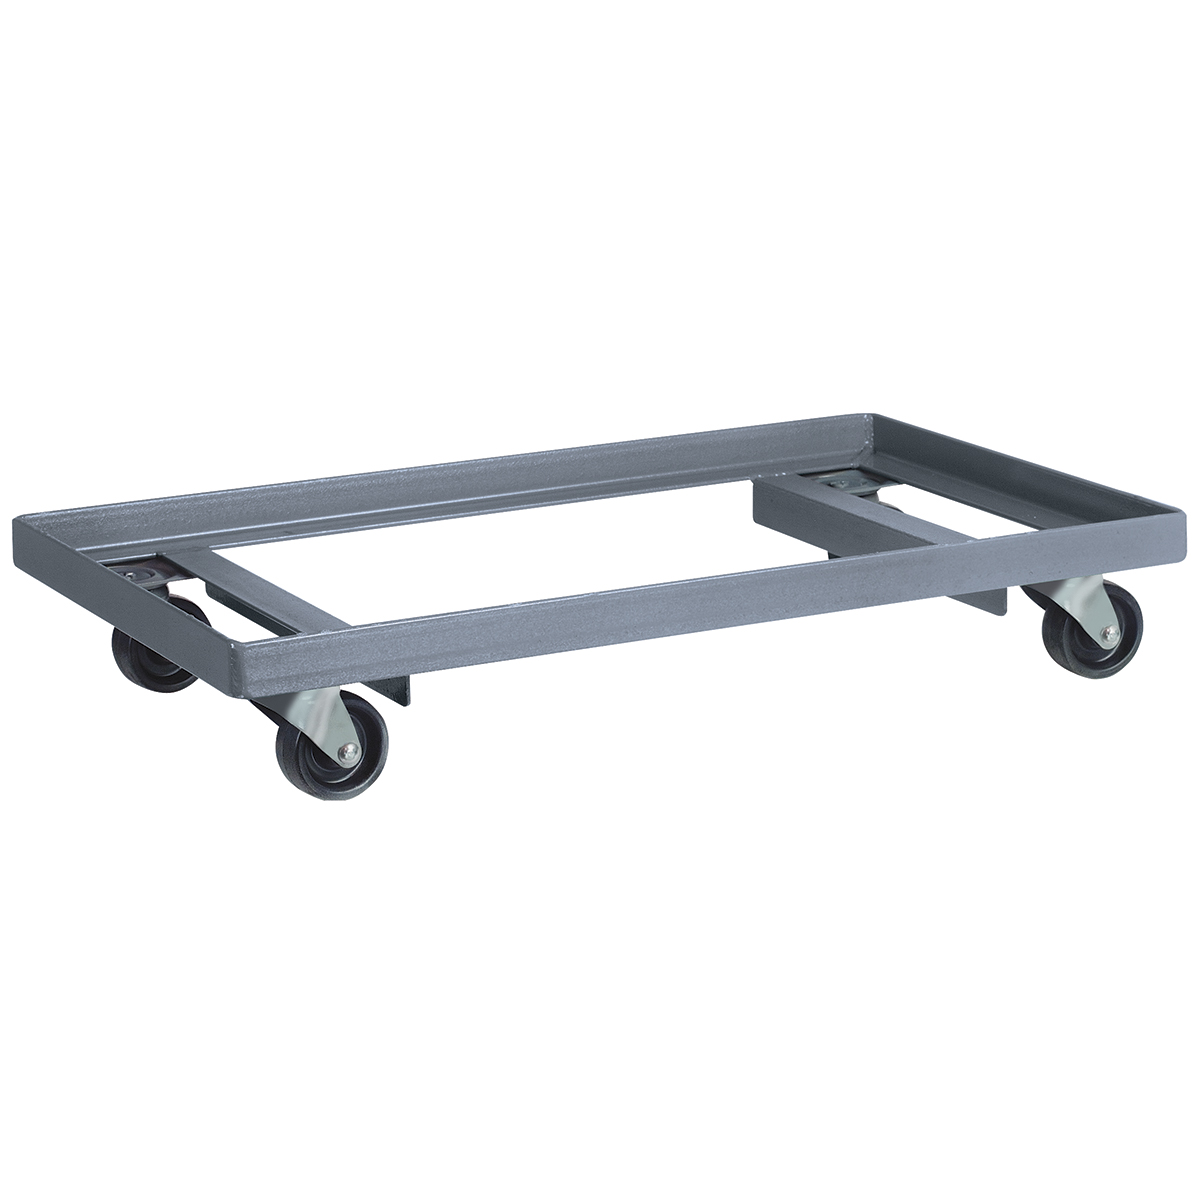 Item DISCONTINUED by Manufacturer.  Steel Dolly, 24x36, N/A3